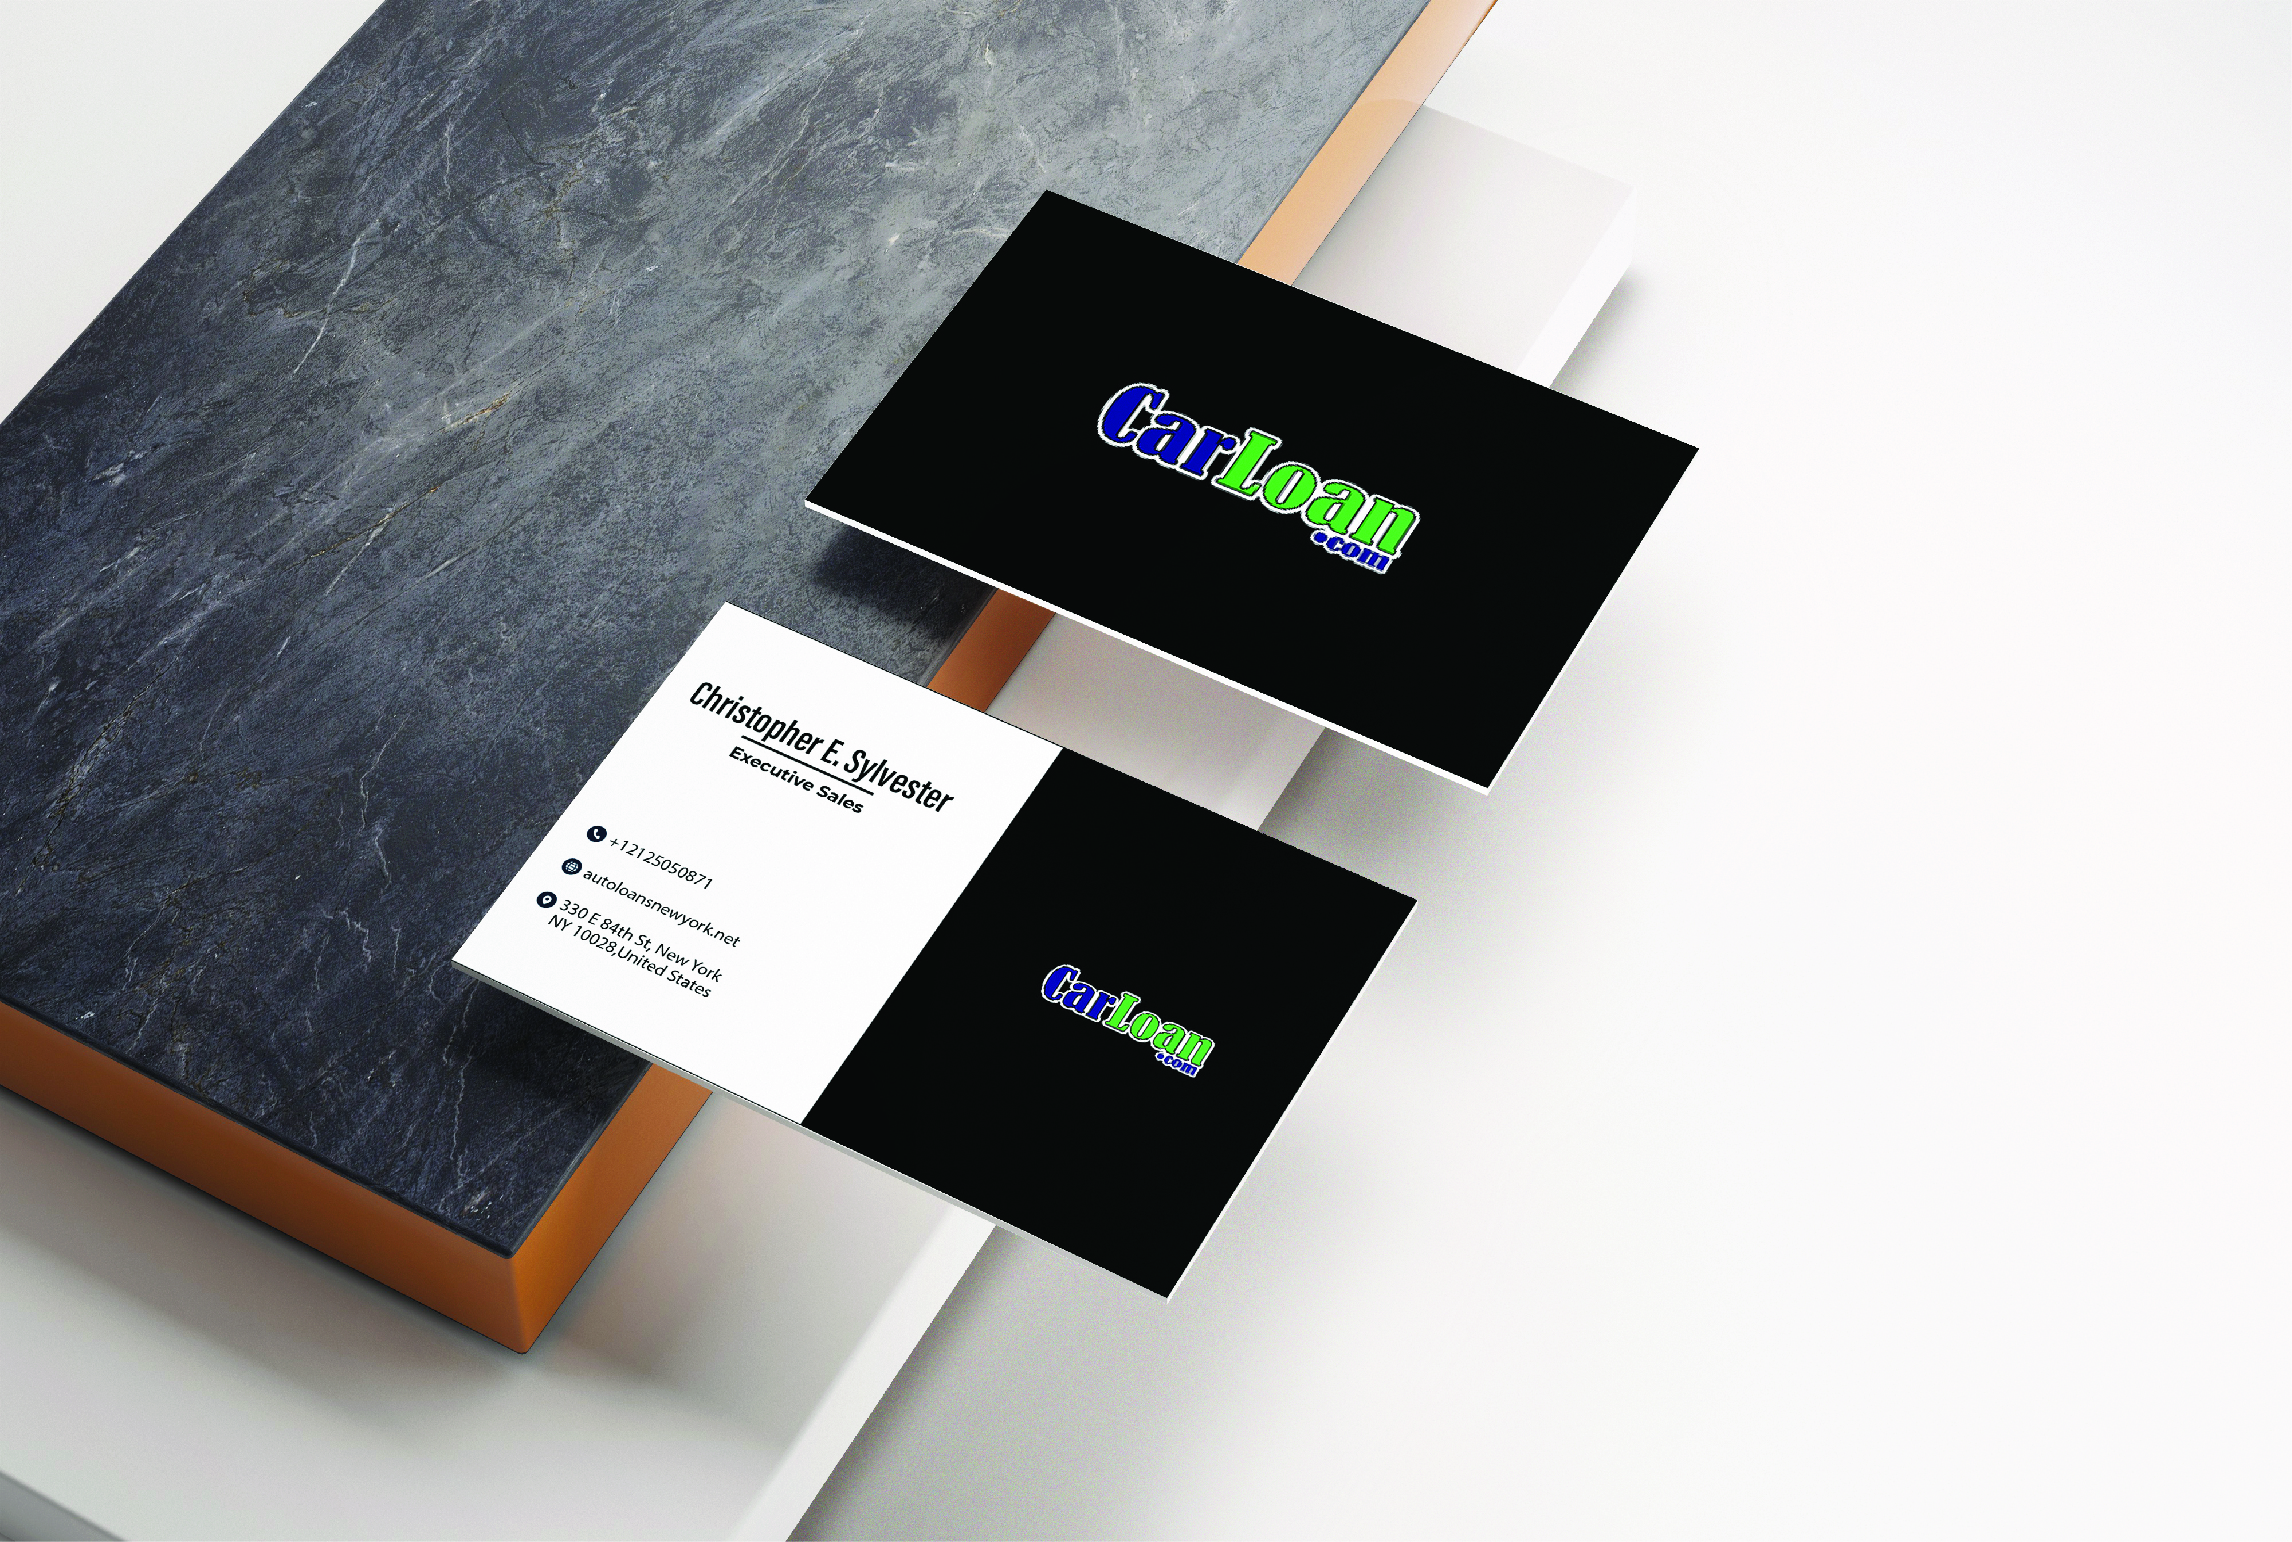 I will make professional and awesome Stylish minimalist business cards for you